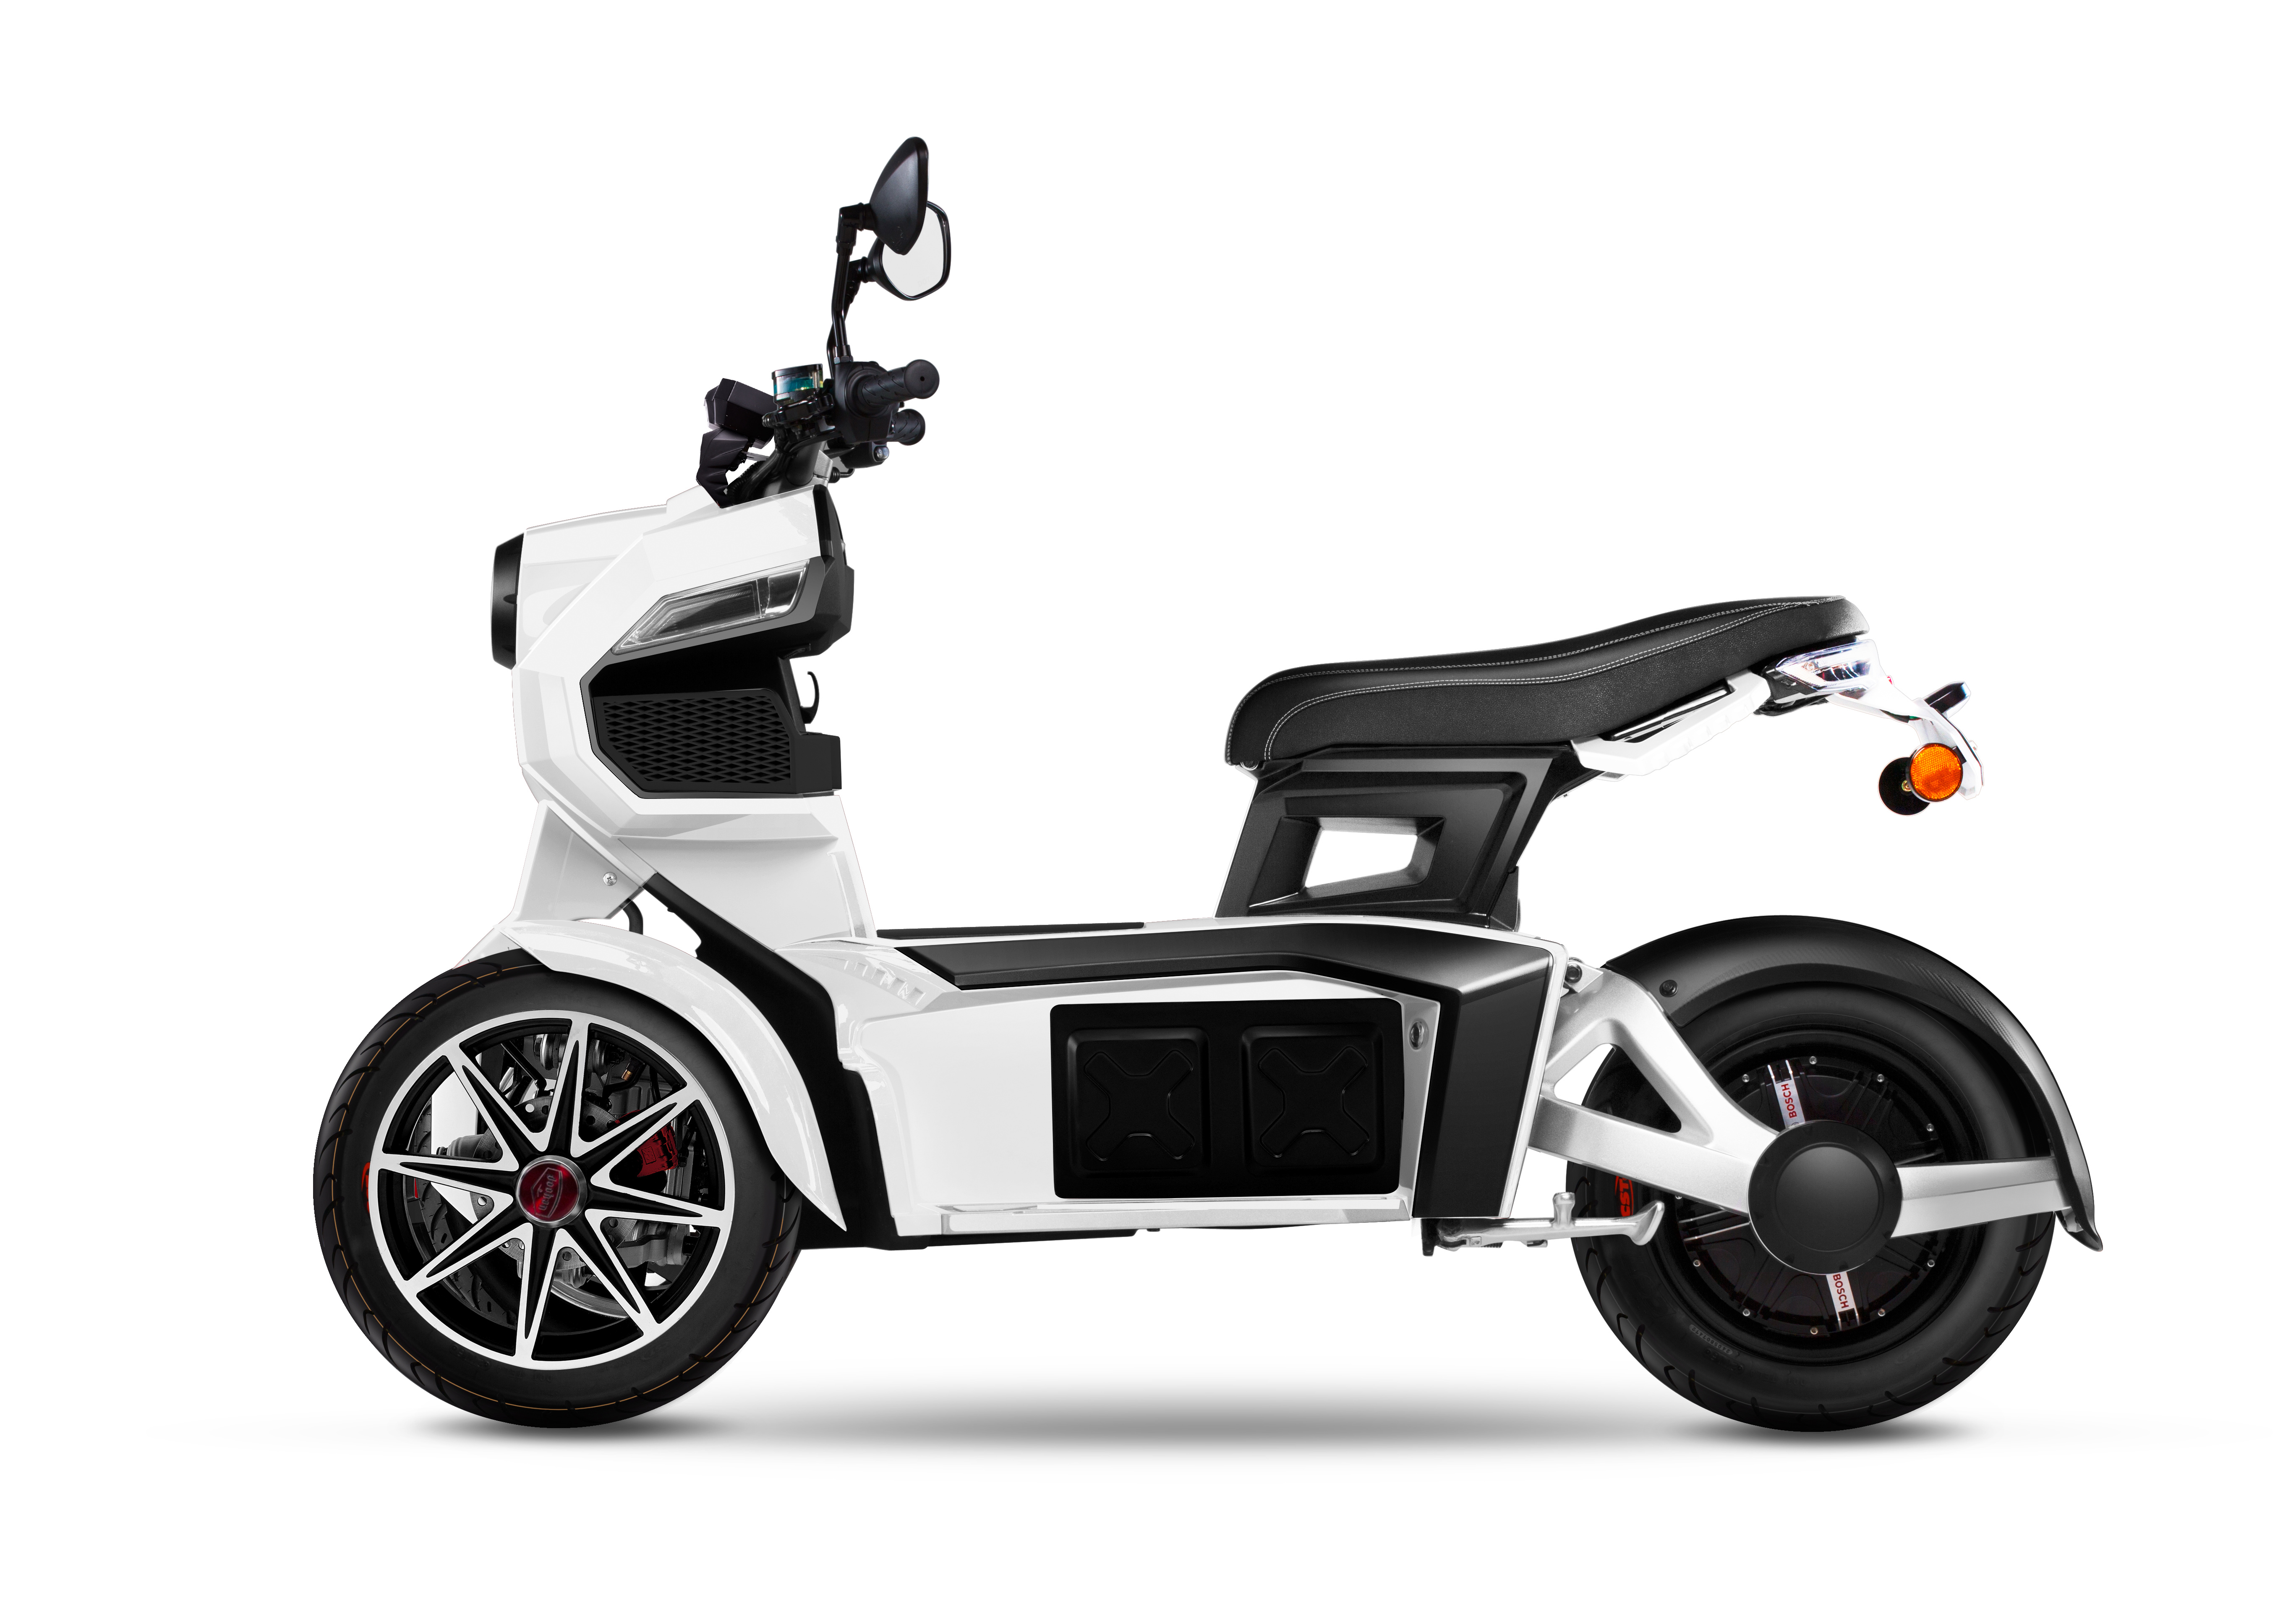 ITanks [Knight edition] Dual front wheel electric motorcycle trike lithium power battery bike 60V